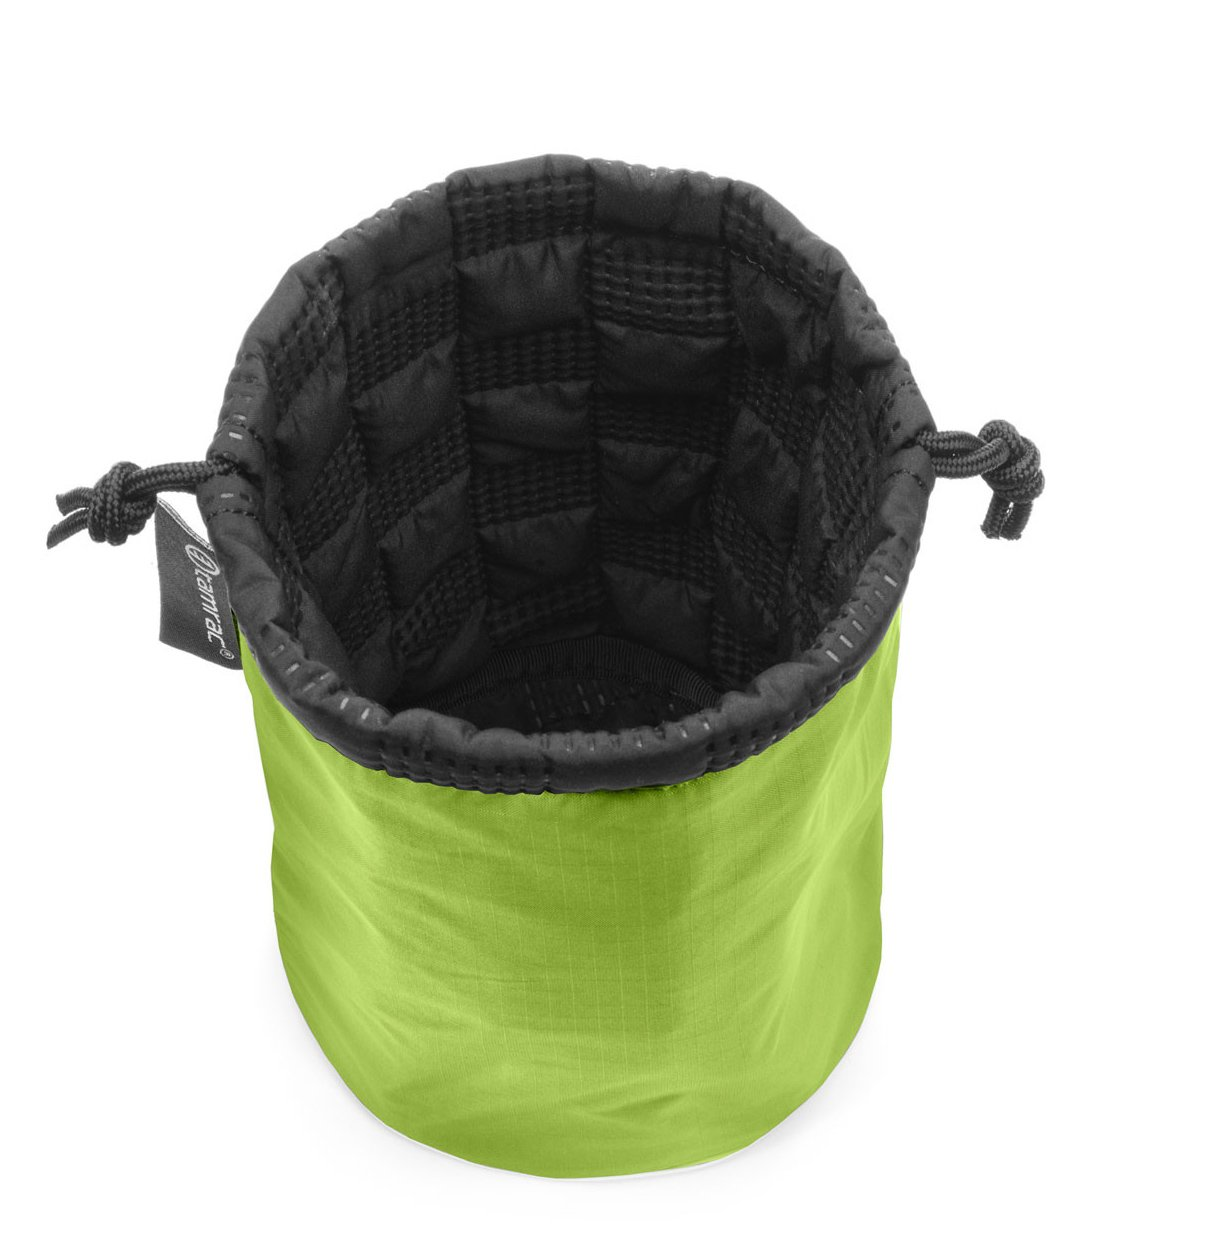 Easy-to-Access Protection Quilted Drawstring Ocean Tamrac Goblin Lens Pouch 5.3  Lens Bag